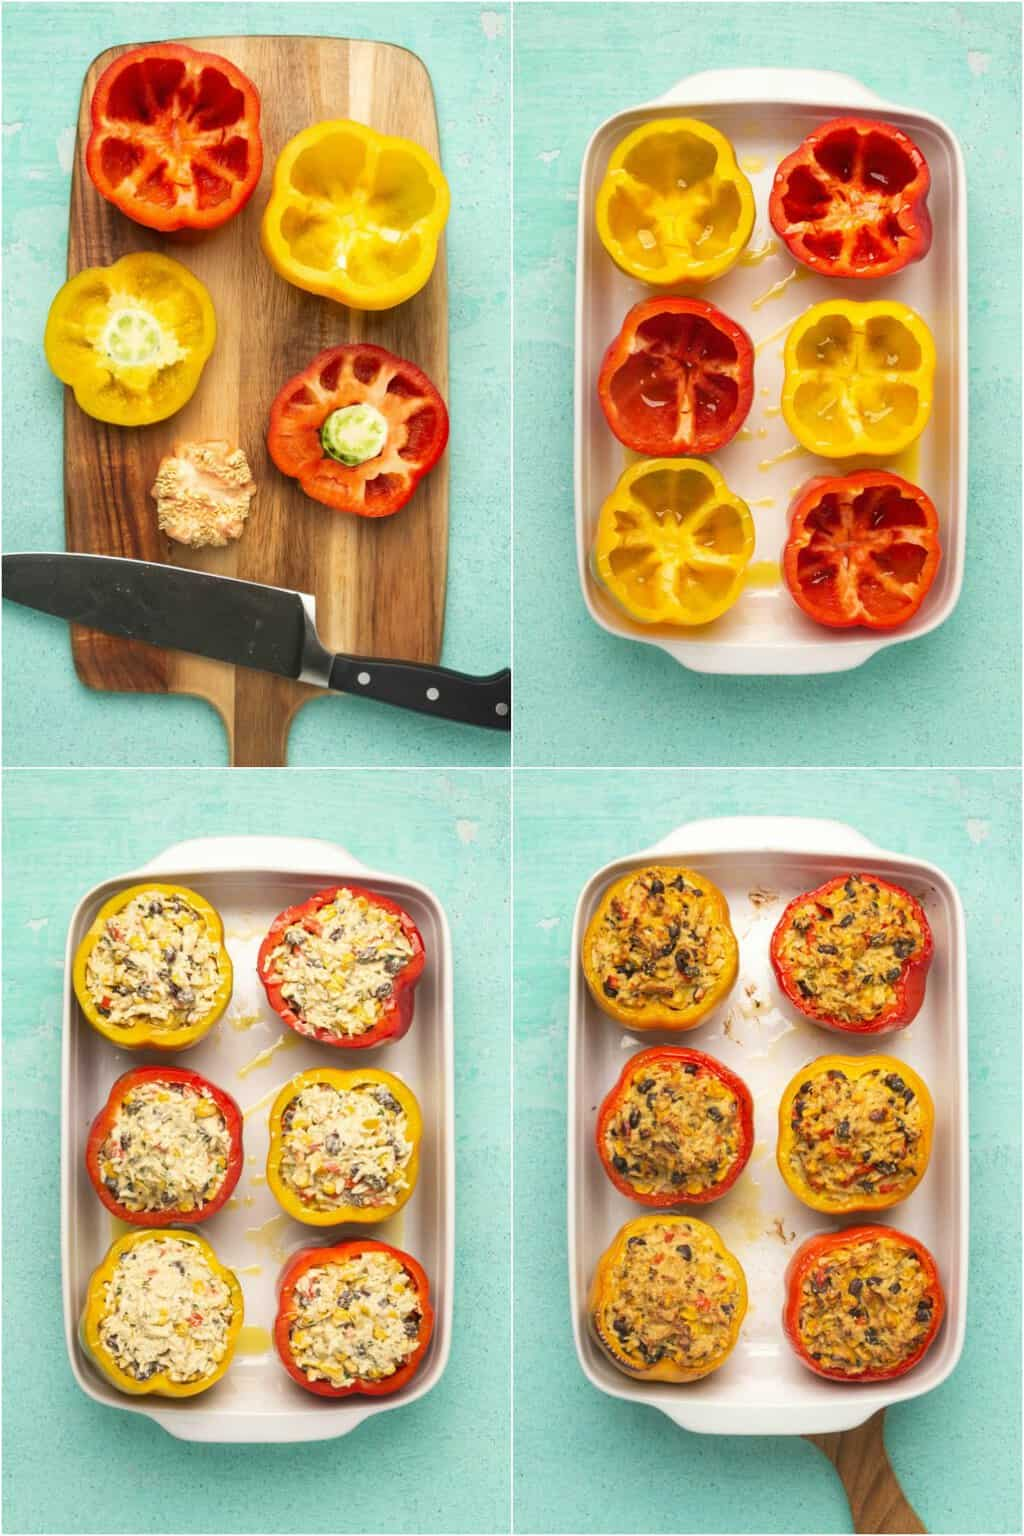 Step by step process photo collage of making vegan stuffed peppers.